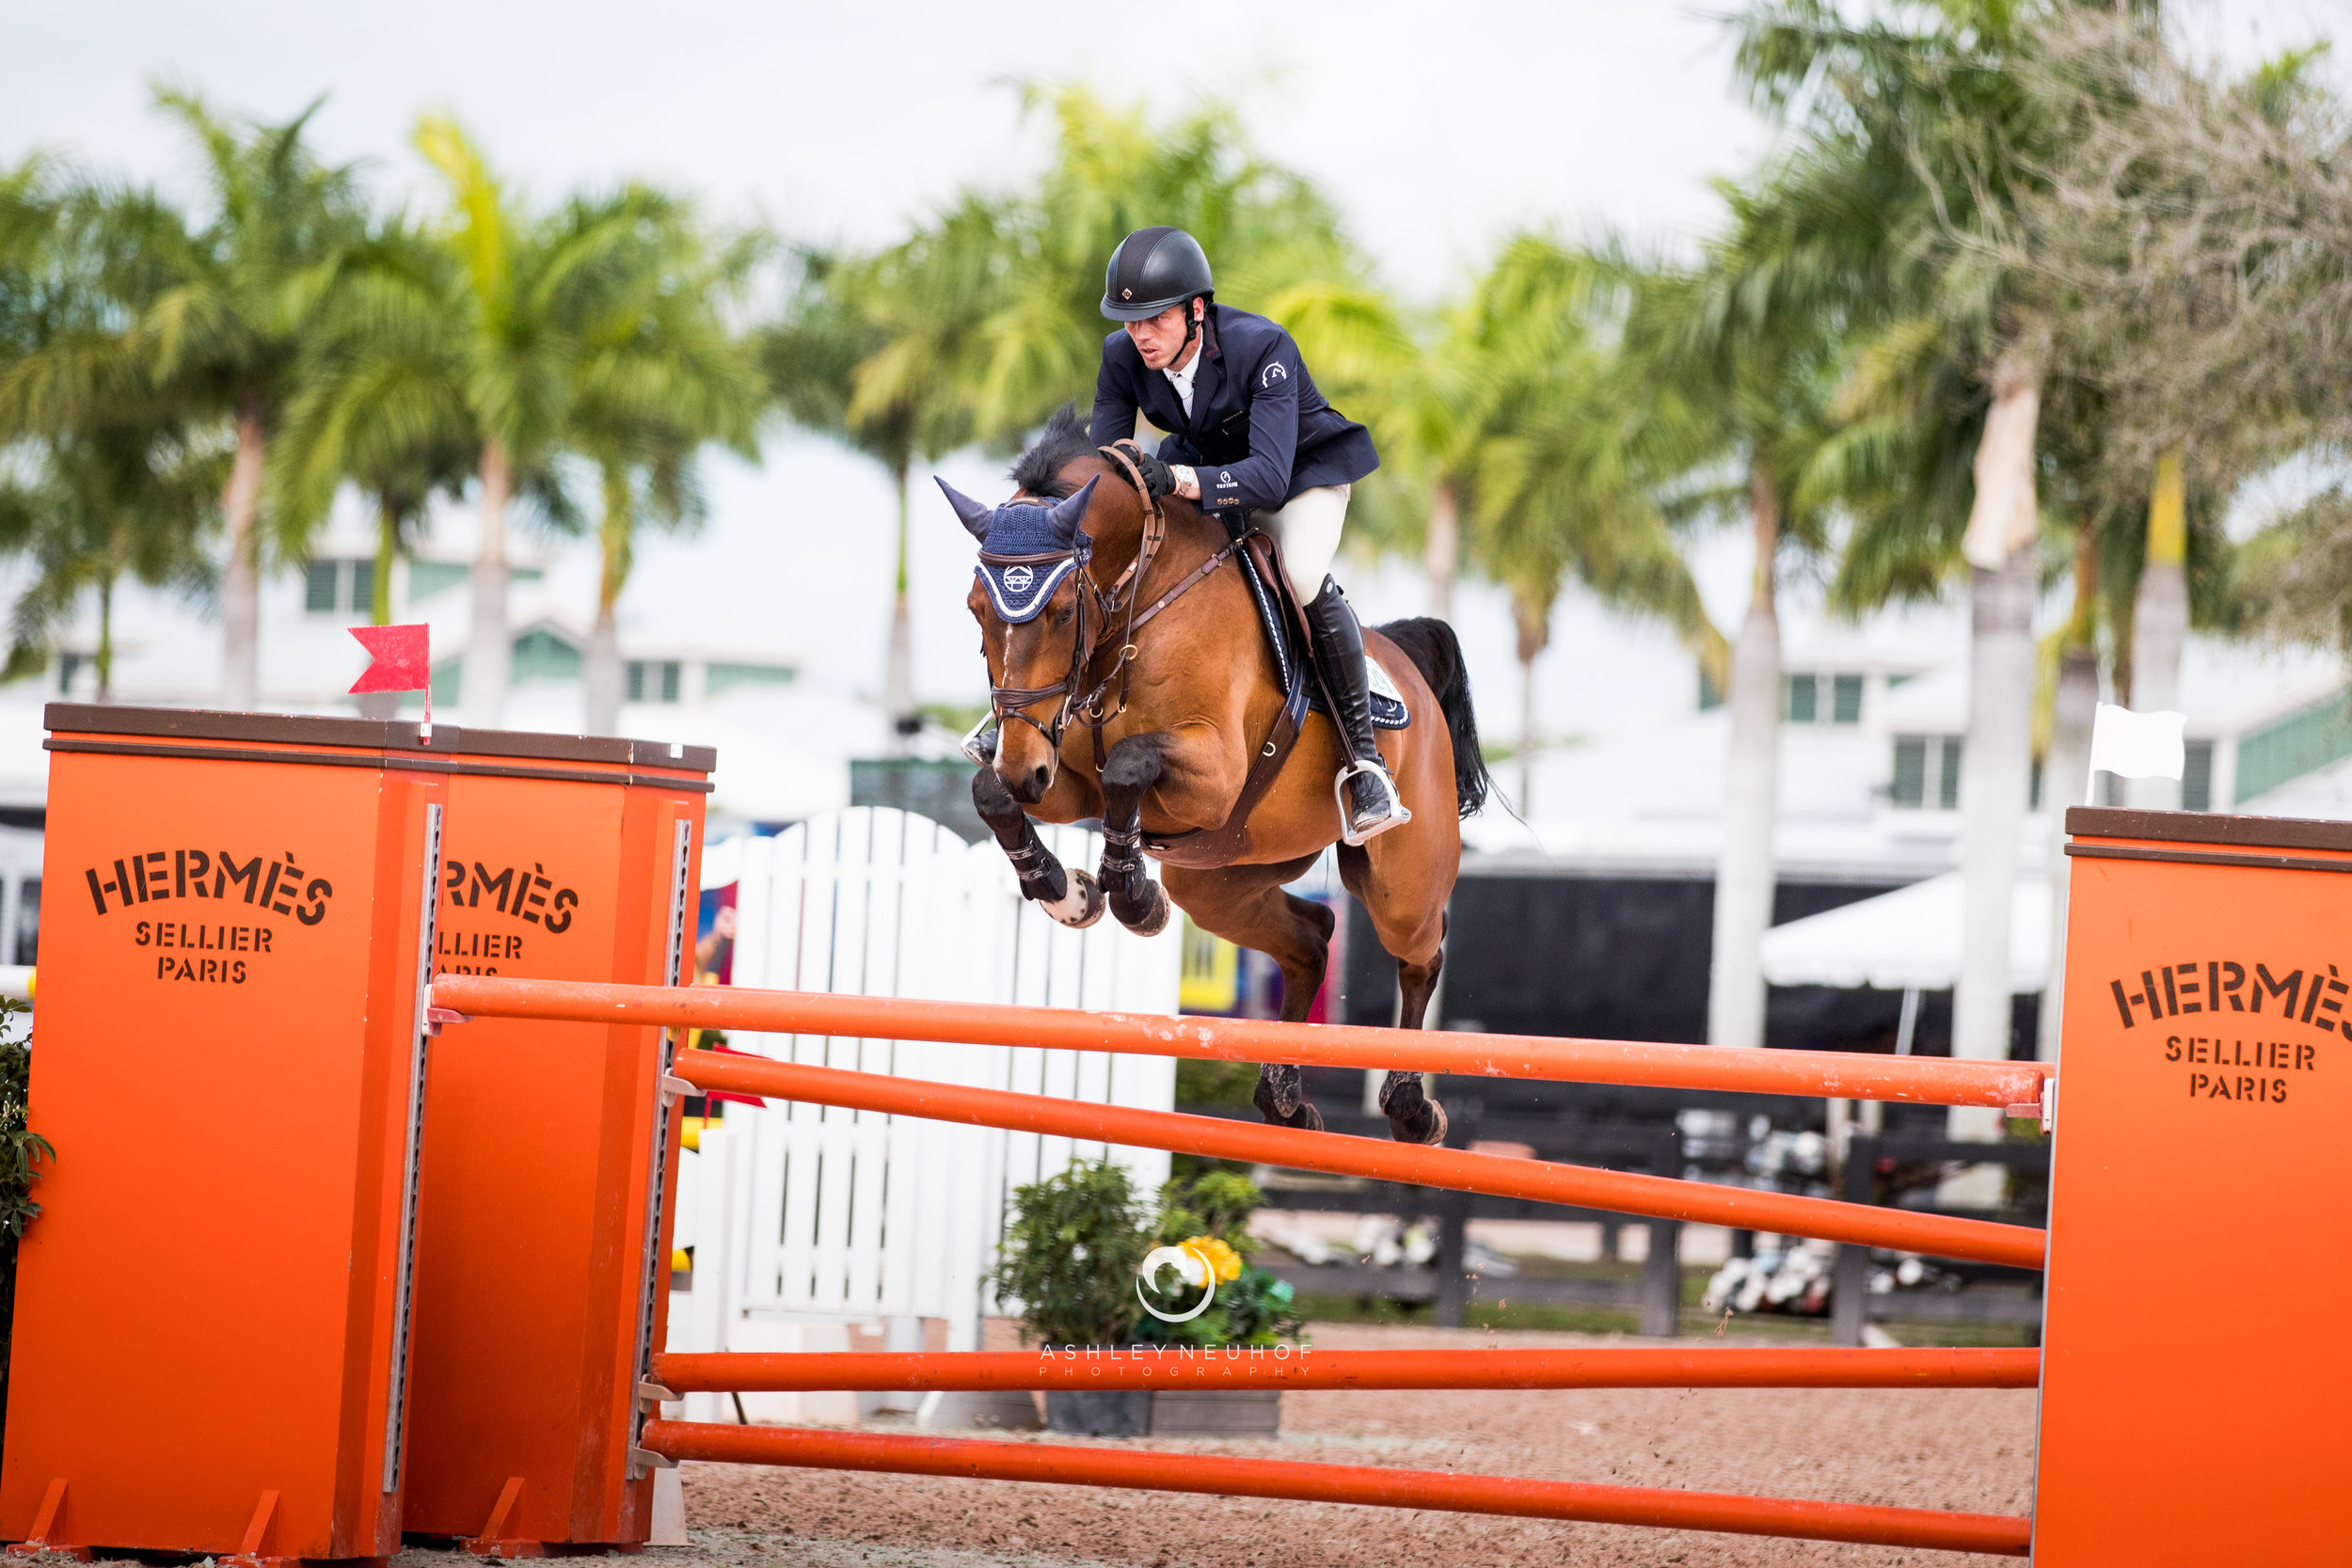 Harrie Smolders and Gotico di ca' San Giorgio at Winter Equestrian Festival 2019. Photo by Ashley Neuhof Photography.